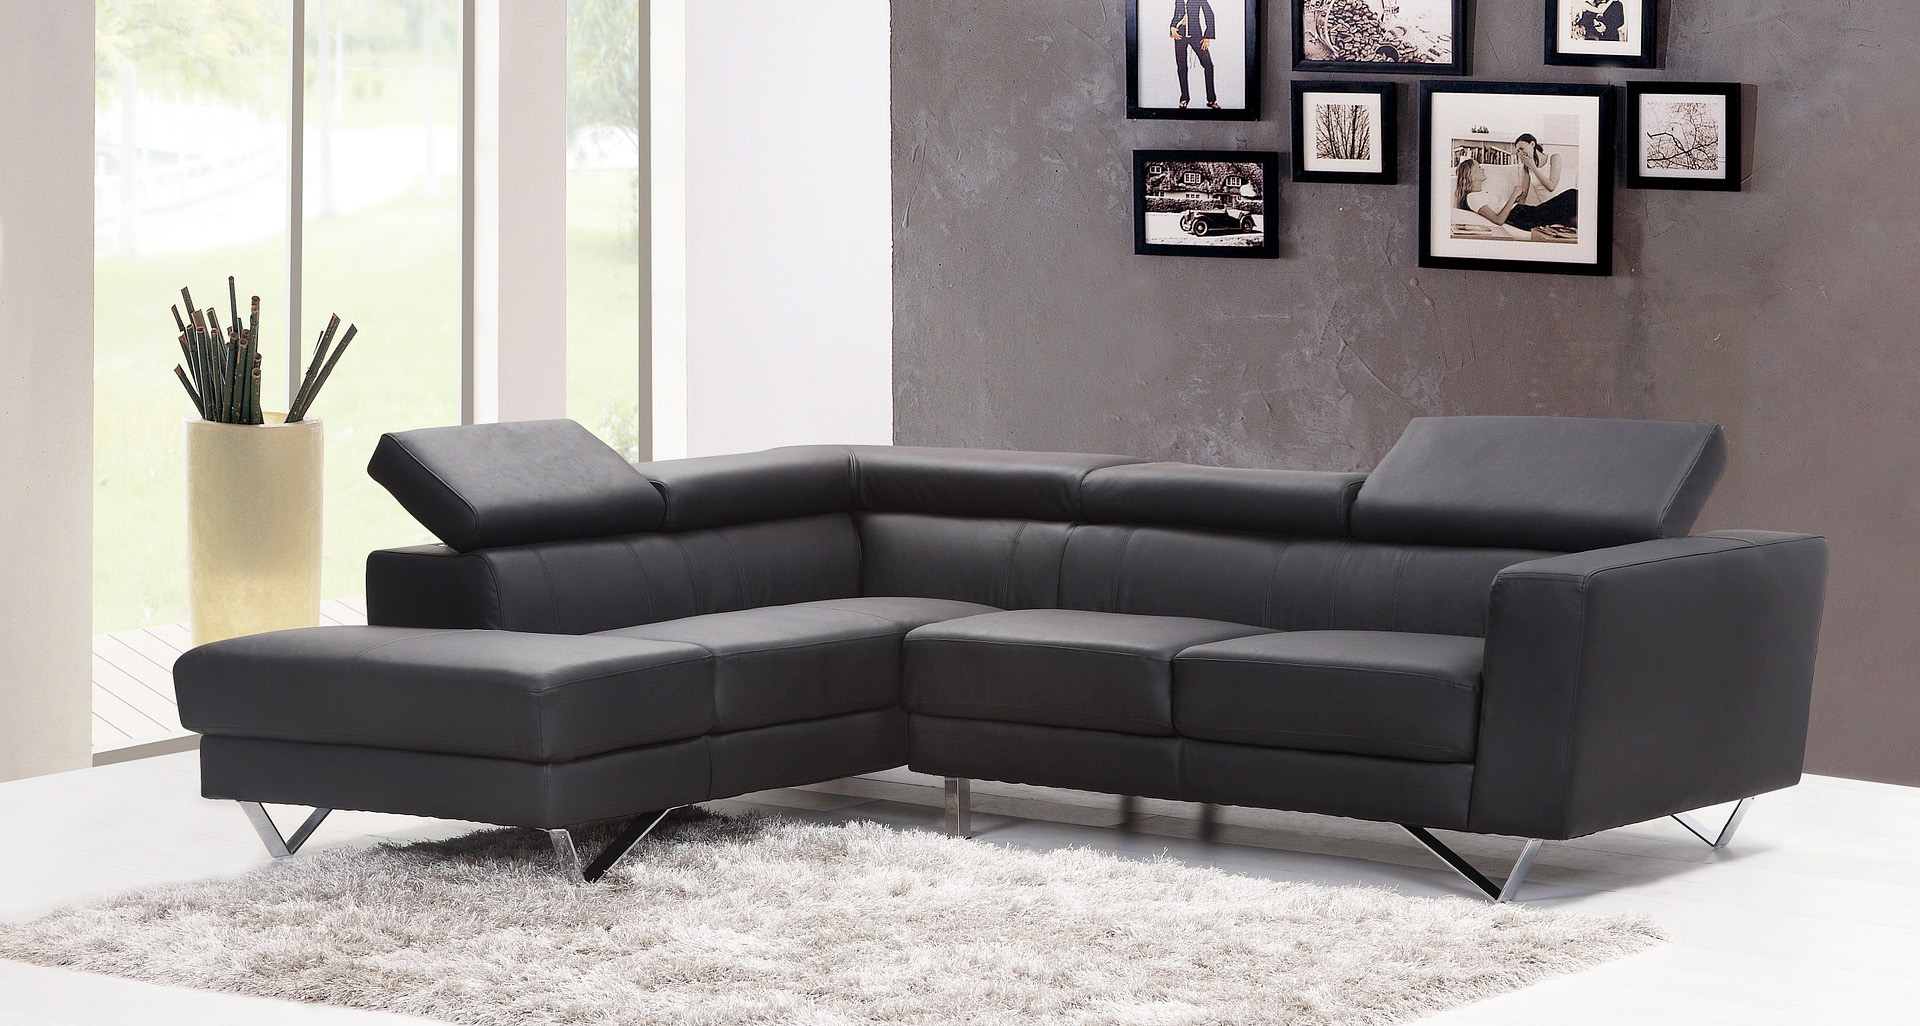 Modern Living Room Sofa for Family Coziness